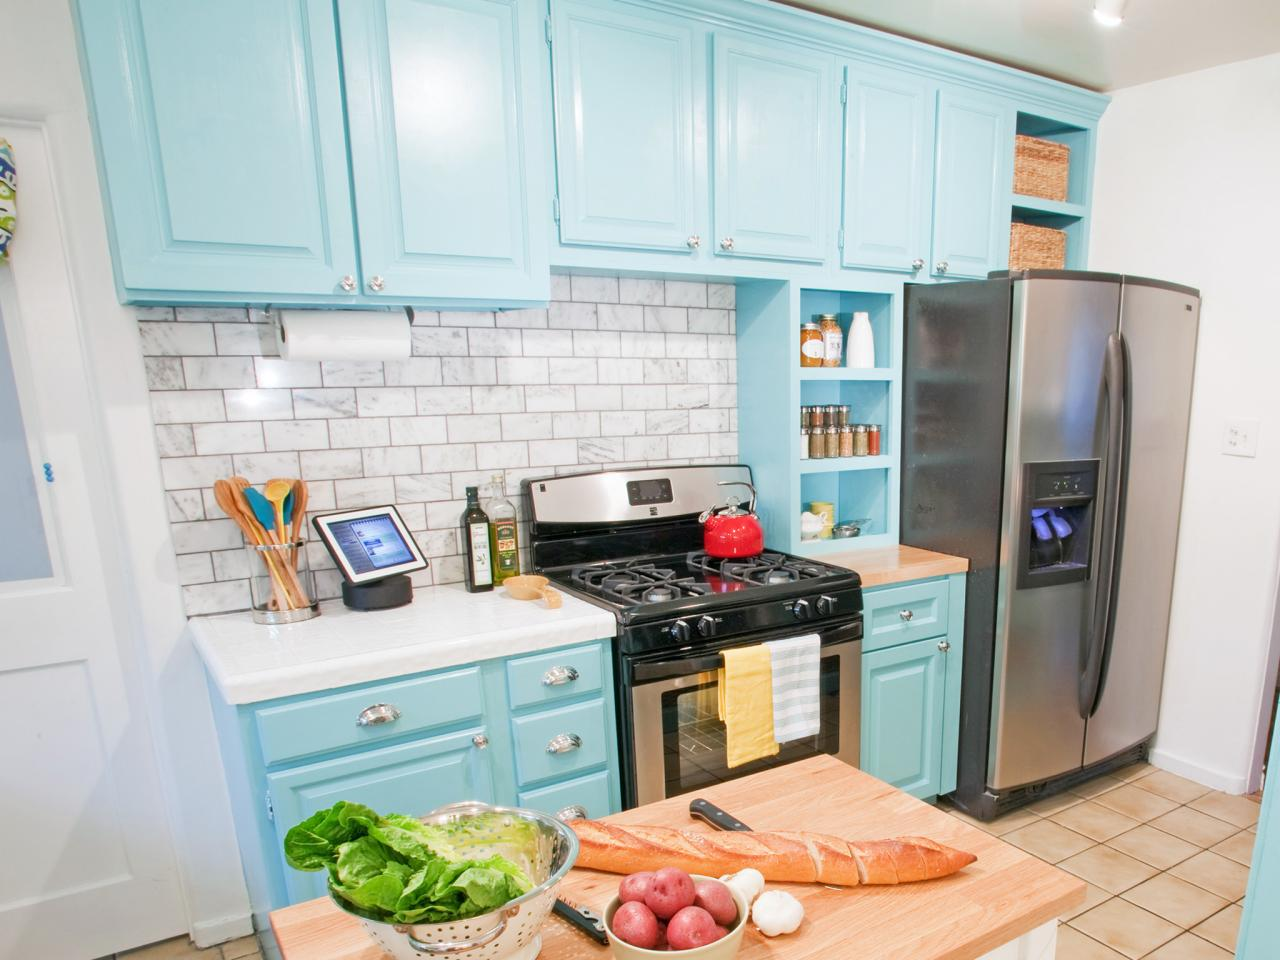 Kitchen cabinet paint pictures ideas tips from hgtv hgtv for Painting kitchen cabinets